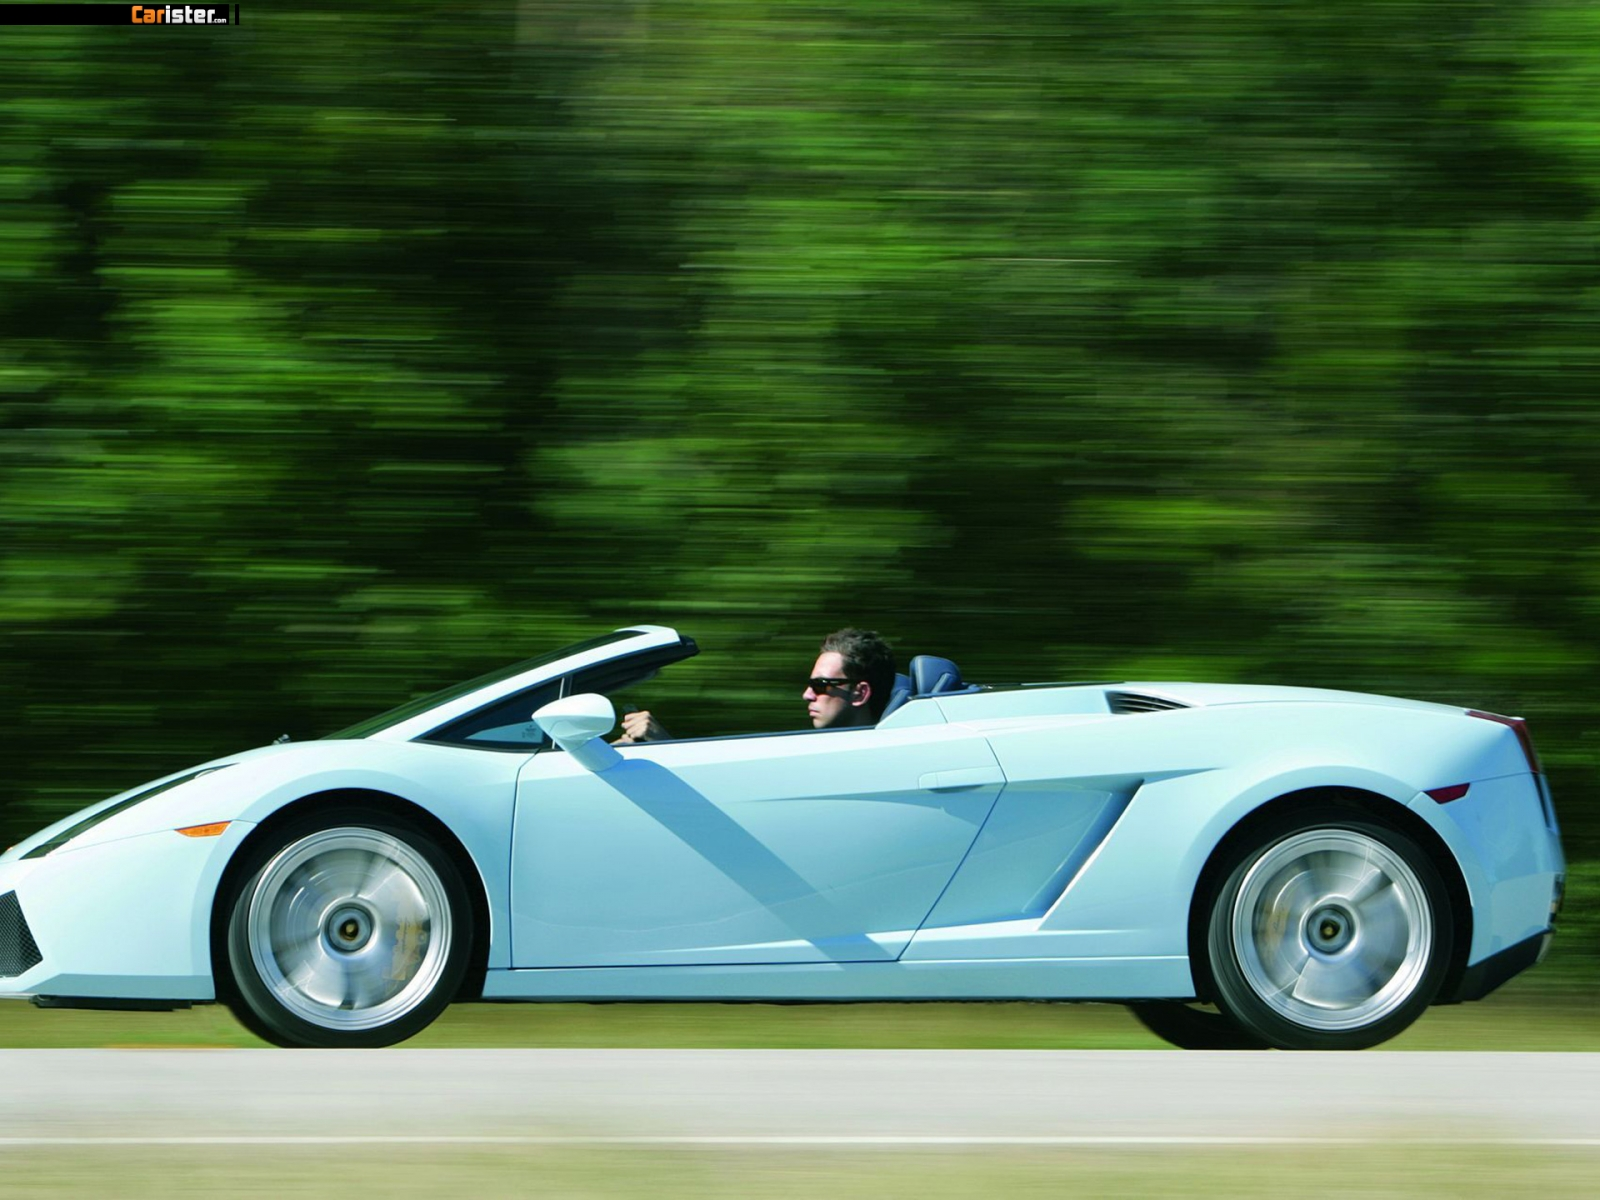 Lamborghini Gallardo Spyder 2006 - Photo 10 - Taille: 1600x1200